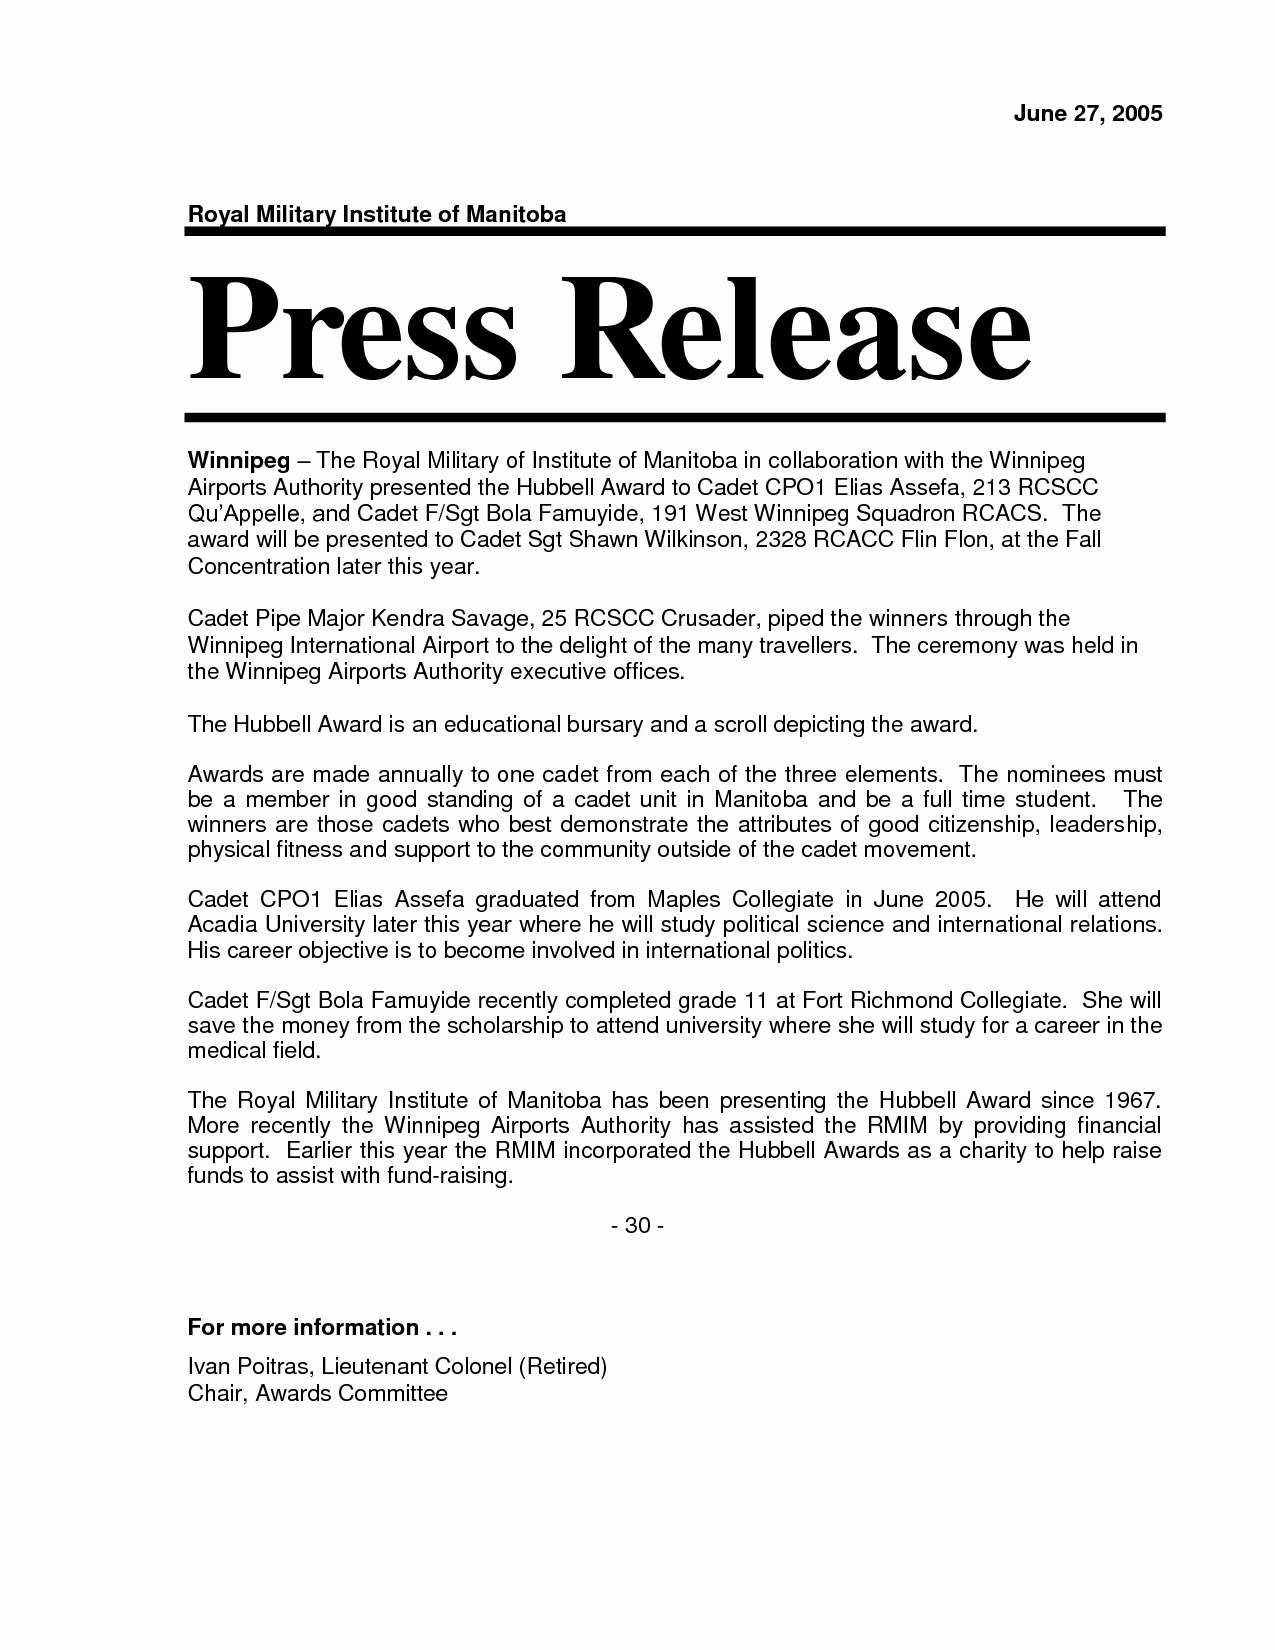 Press Release Template Free Beautiful Release Press Release Template